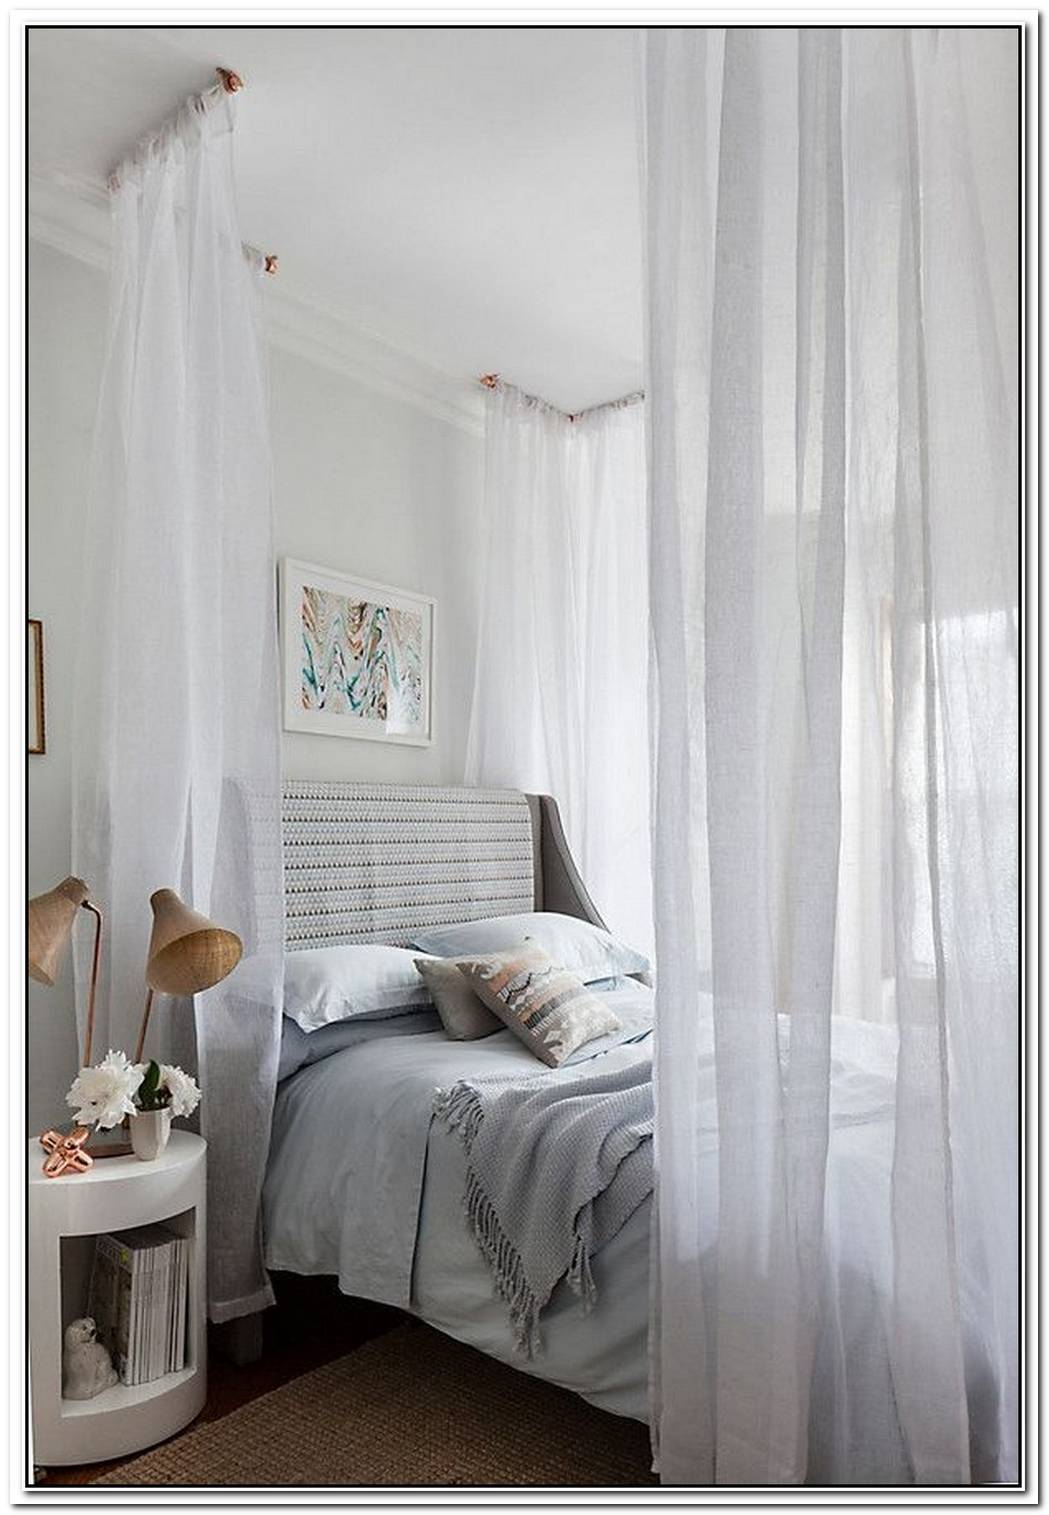 Breezy Curtains Make For A Dreamy Bedroom